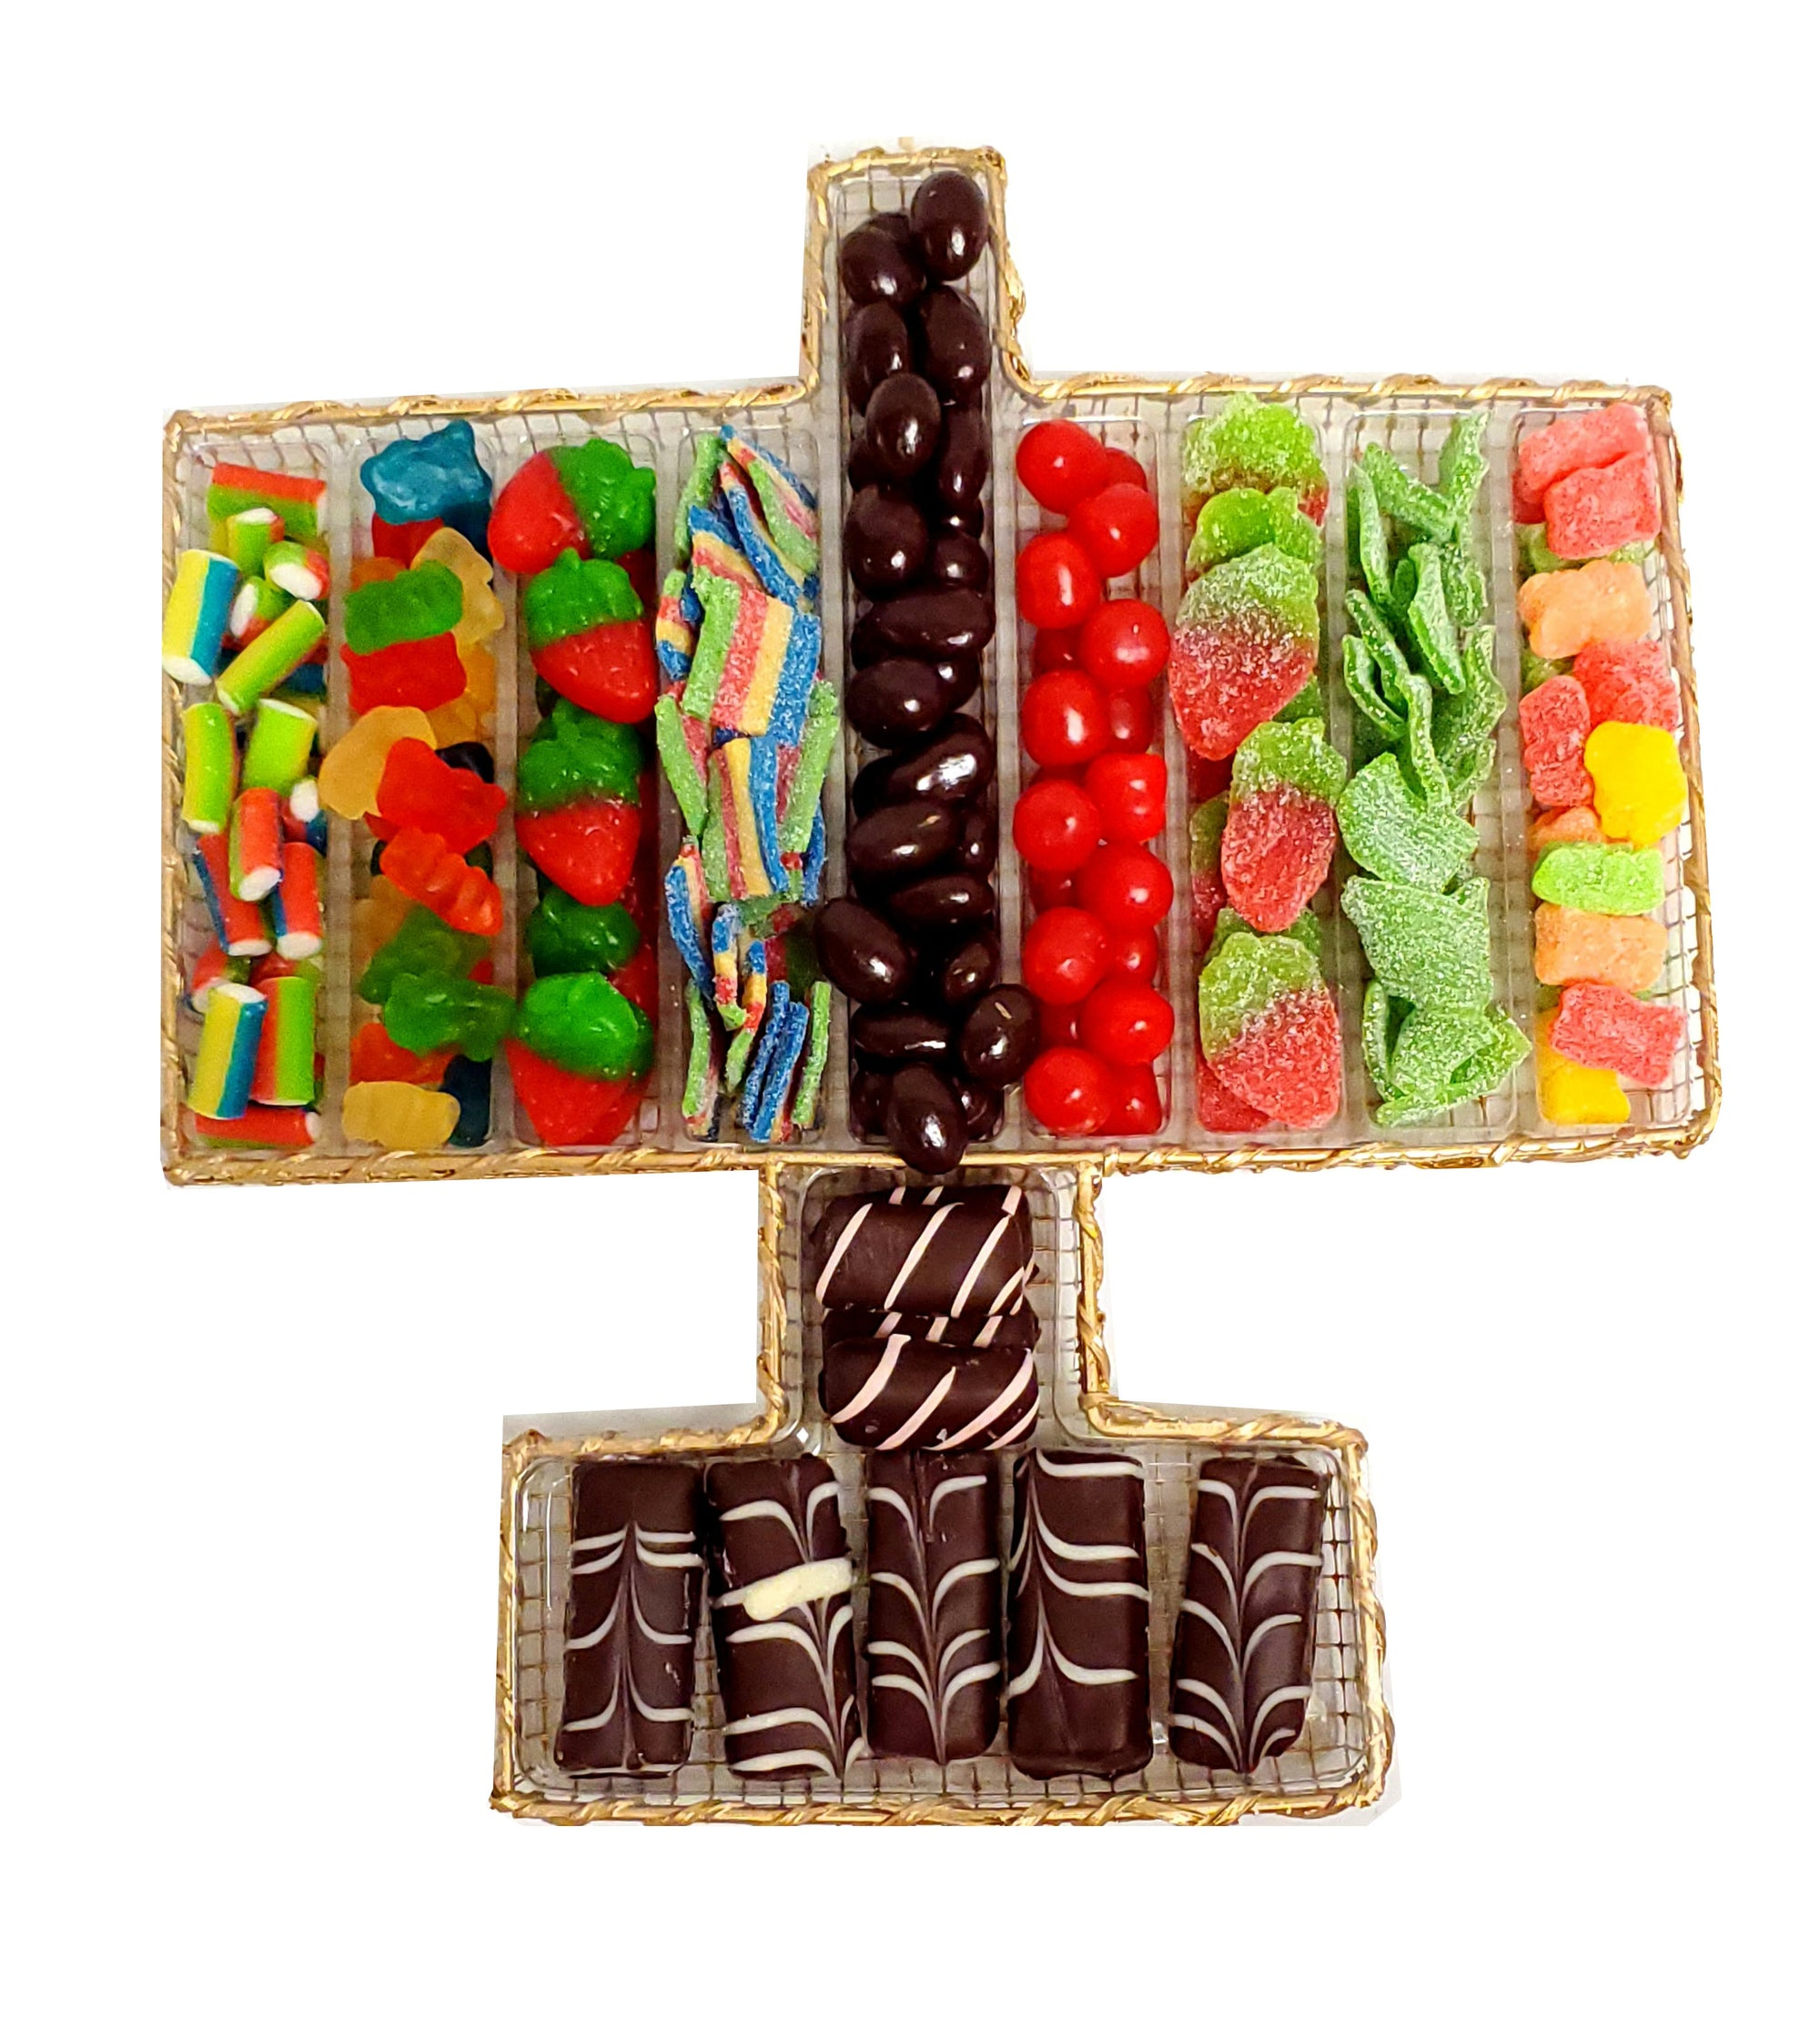 Chanukah Menorah Filled With Candy & Hand Made Non-Dairy Chocolate